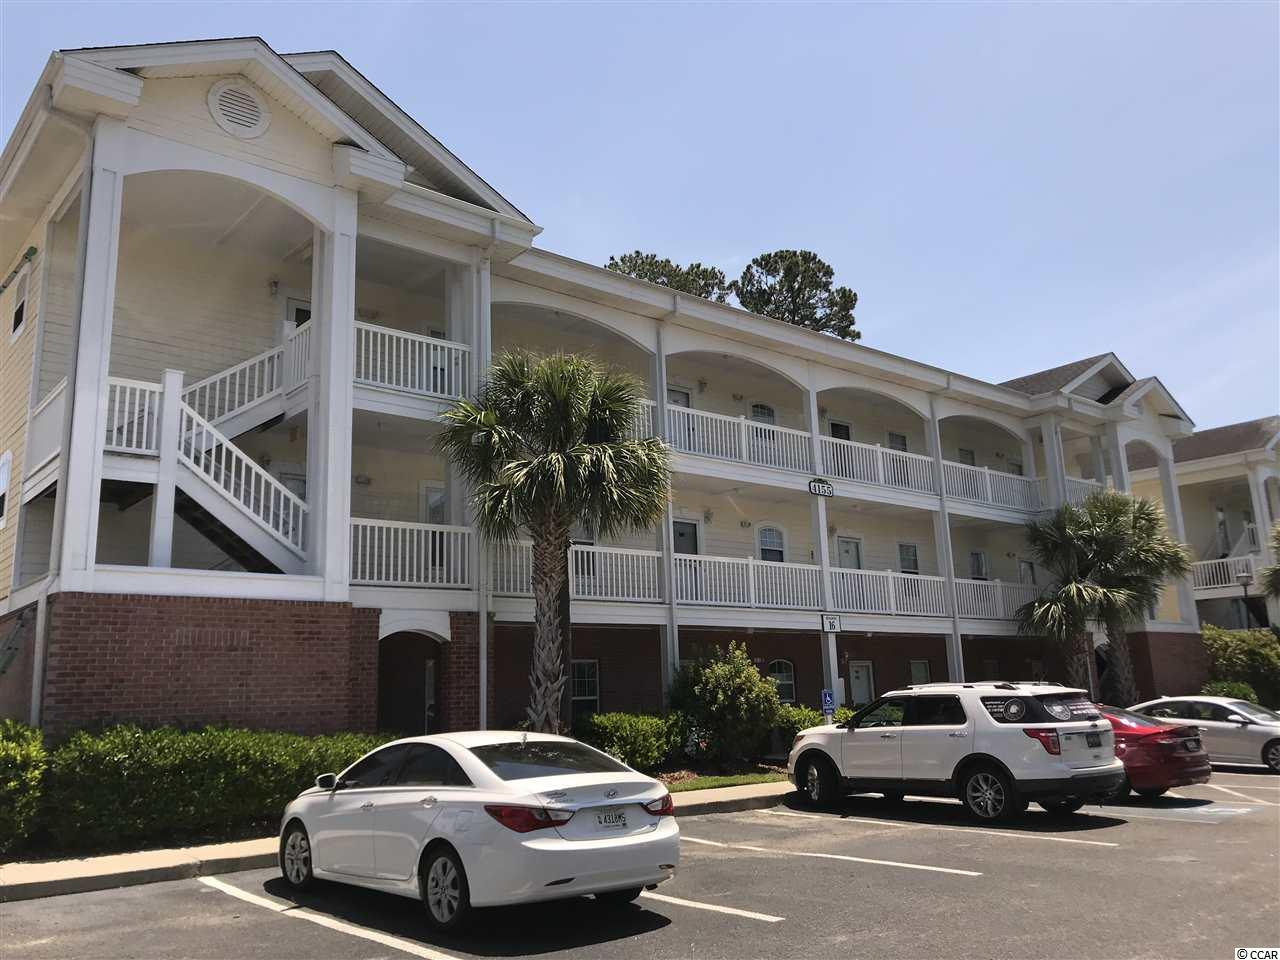 This first floor, 1BR/1.5BA condo in Cypress Bay in Little River is the perfect getaway or residence! Only minutes to the beach in Cherry Grove North Myrtle Beach, and across hwy 17 from the little river water front on the Intracoastal waterway. Fresh paint, fresh floors, just re-done! Plenty of space and did we mention ground floor? Hurry and see this rare opportunity in the Gardens @ Cypress Bay!